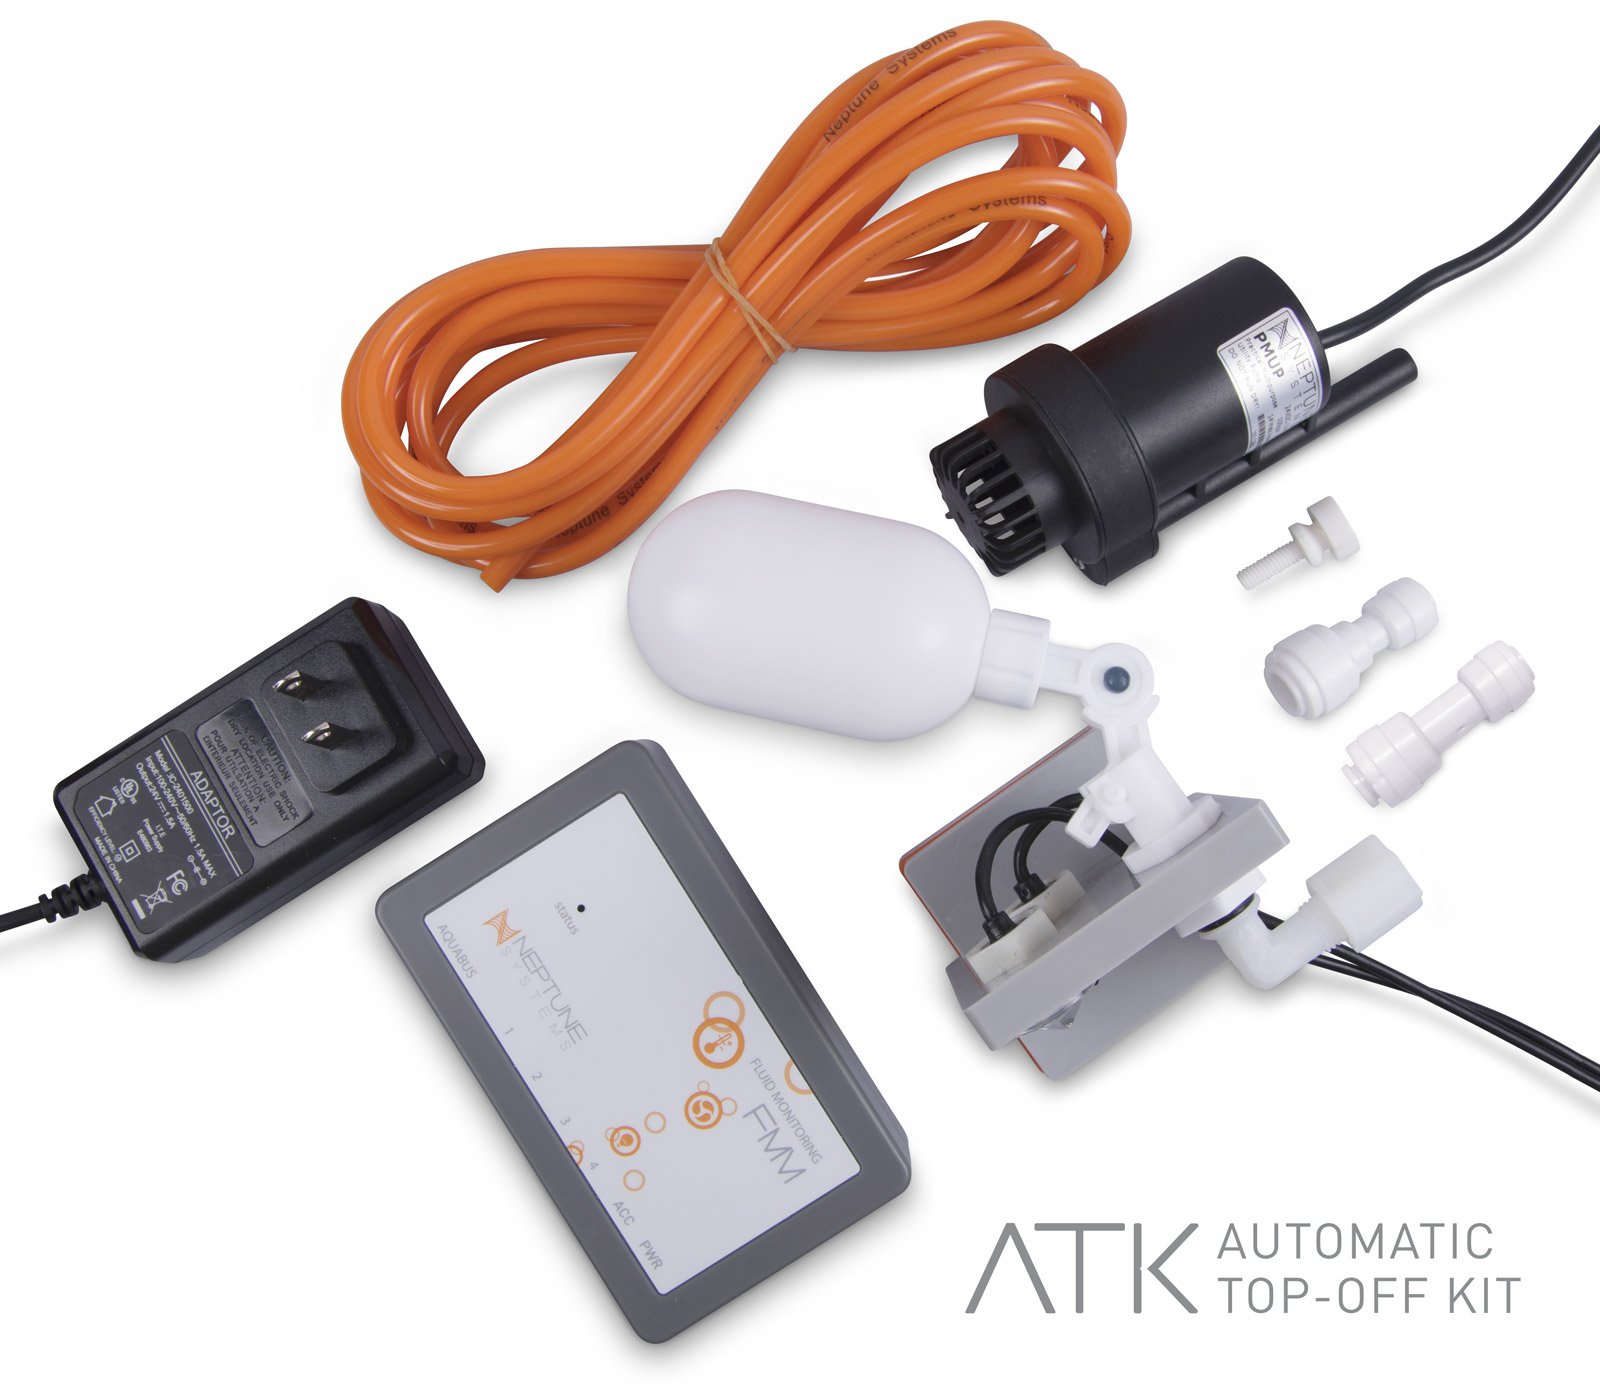 neptune systems automatic top off kit the atk